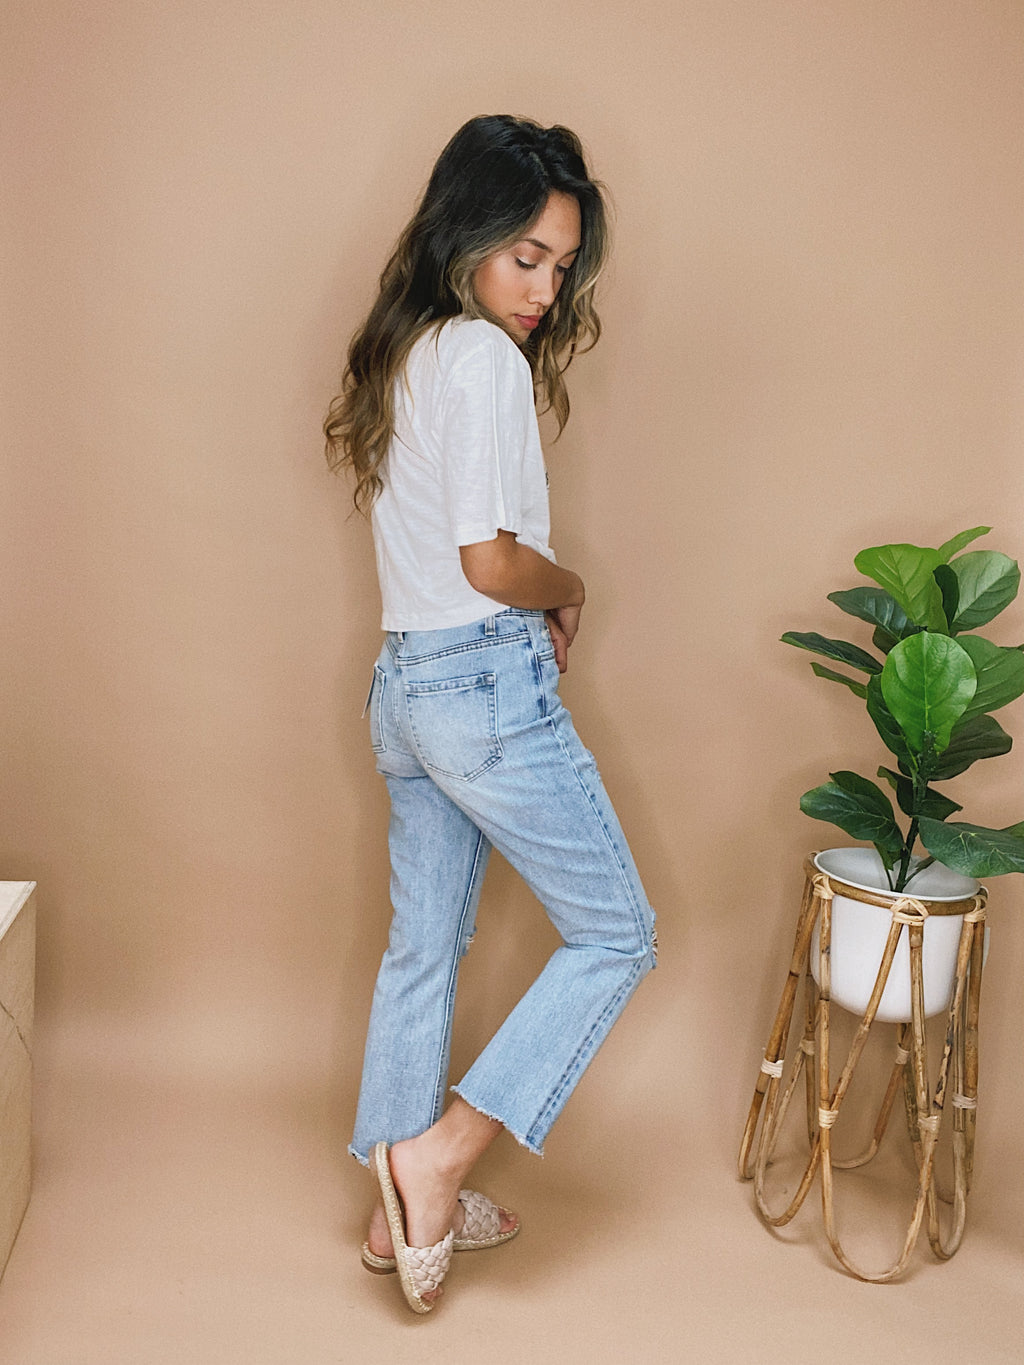 athens wide wicker hat